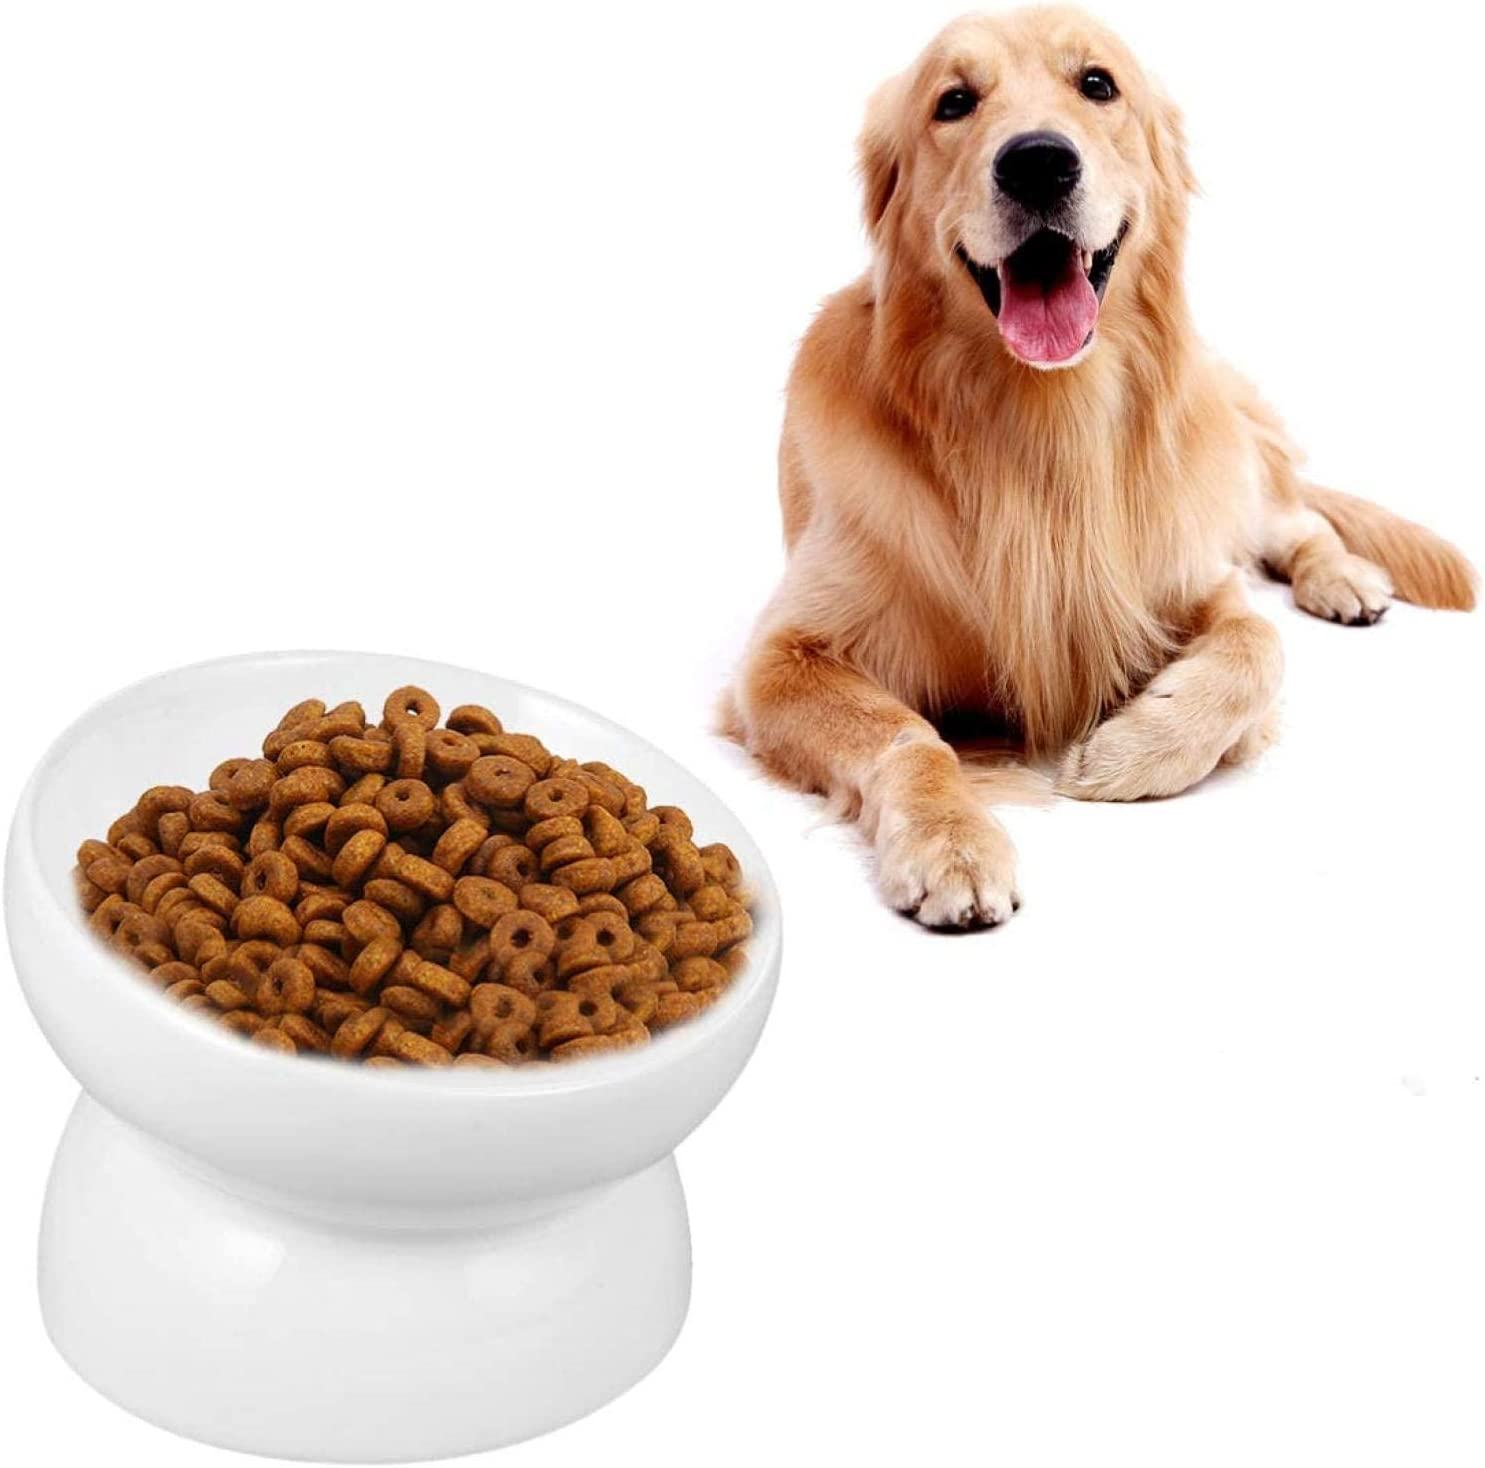 Manufacturer Max 56% OFF regenerated product XHJTD Elevated Dog Bowls Raised Cat Bow Food Bowl